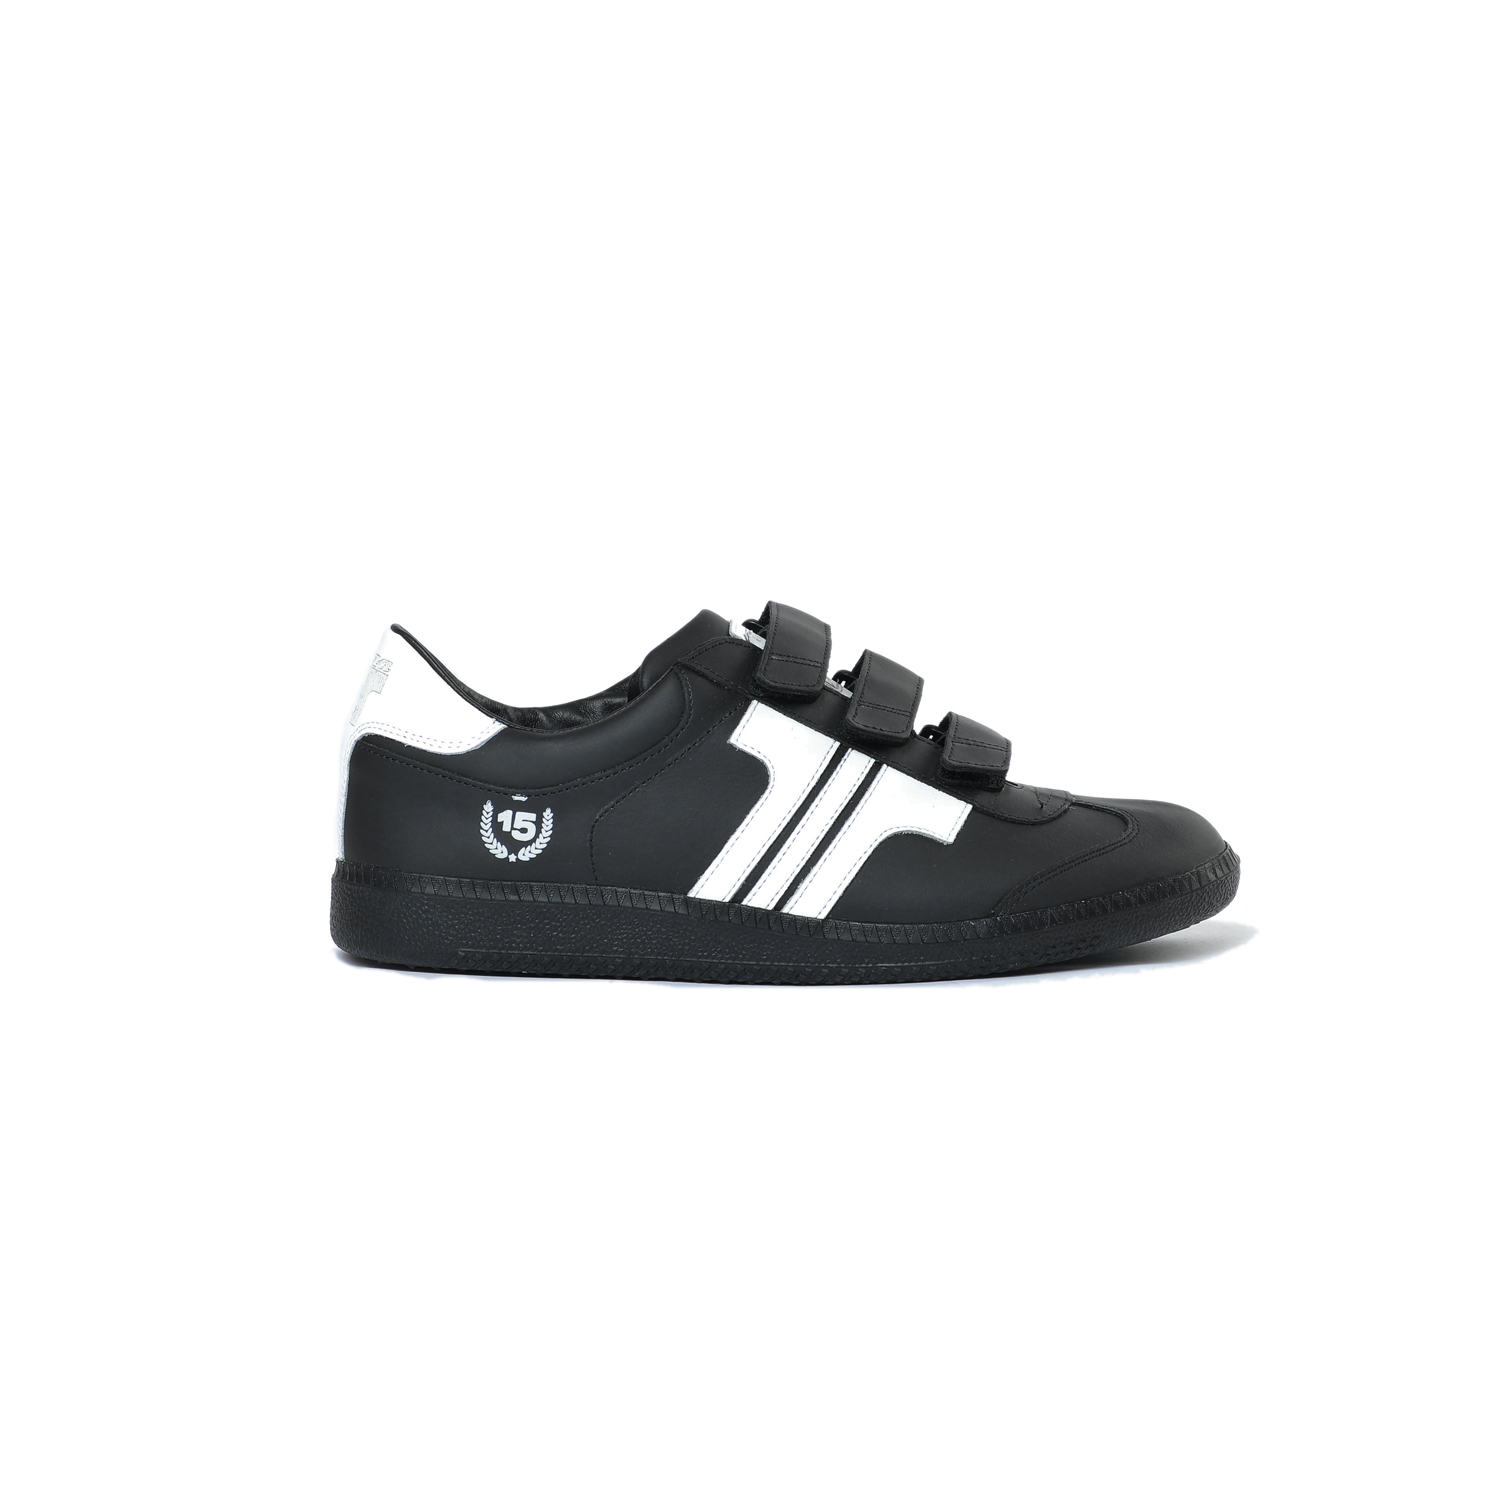 Tisza shoes - Compakt Delux - Black-white anniversary